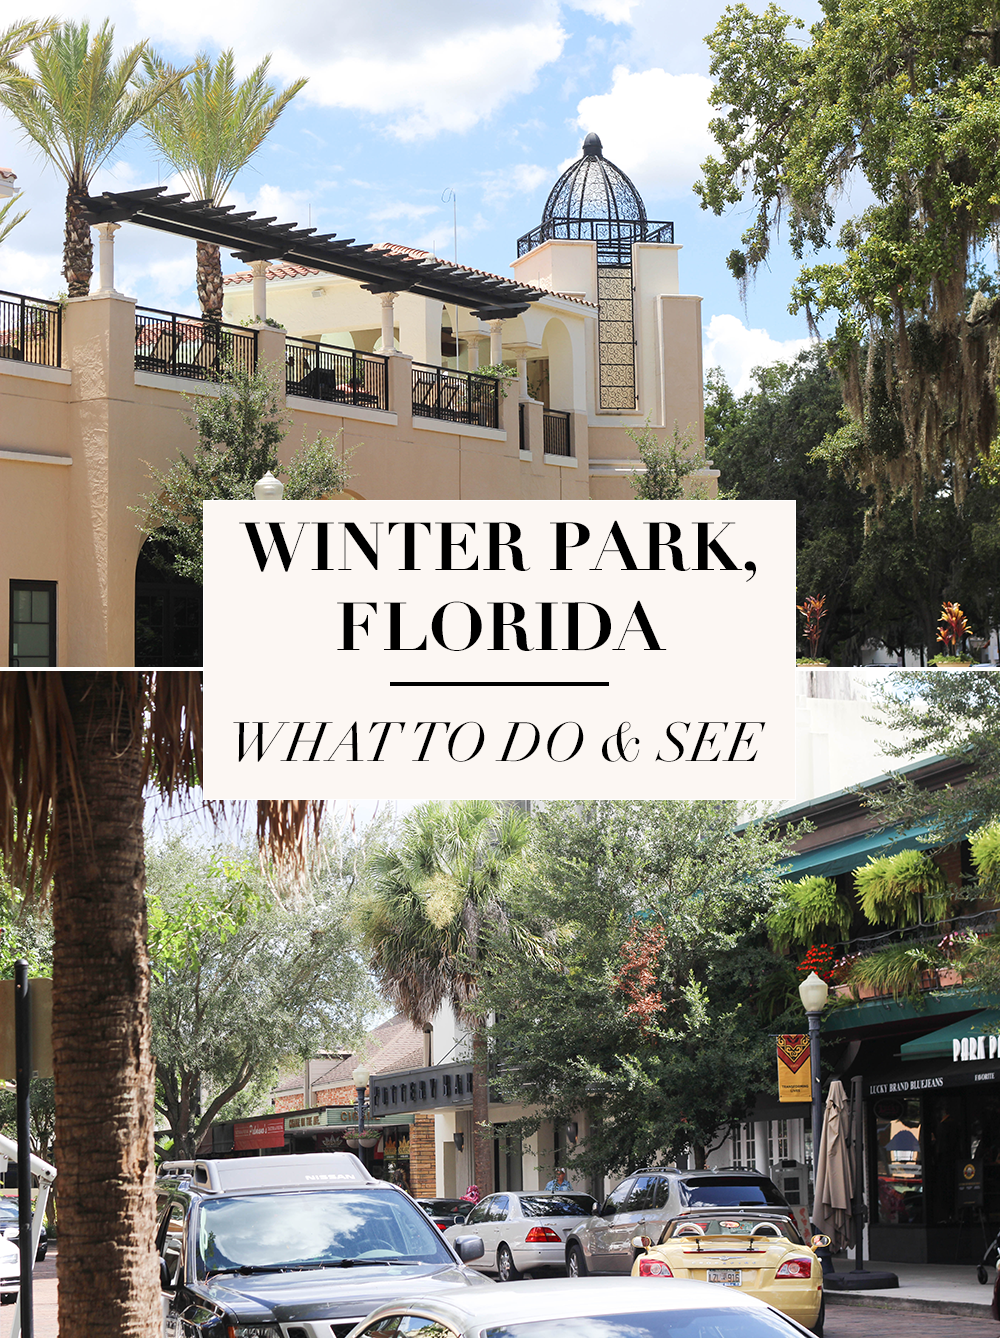 Winter park fl what to do see winter park florida winter park and park for Camping world winter garden fl